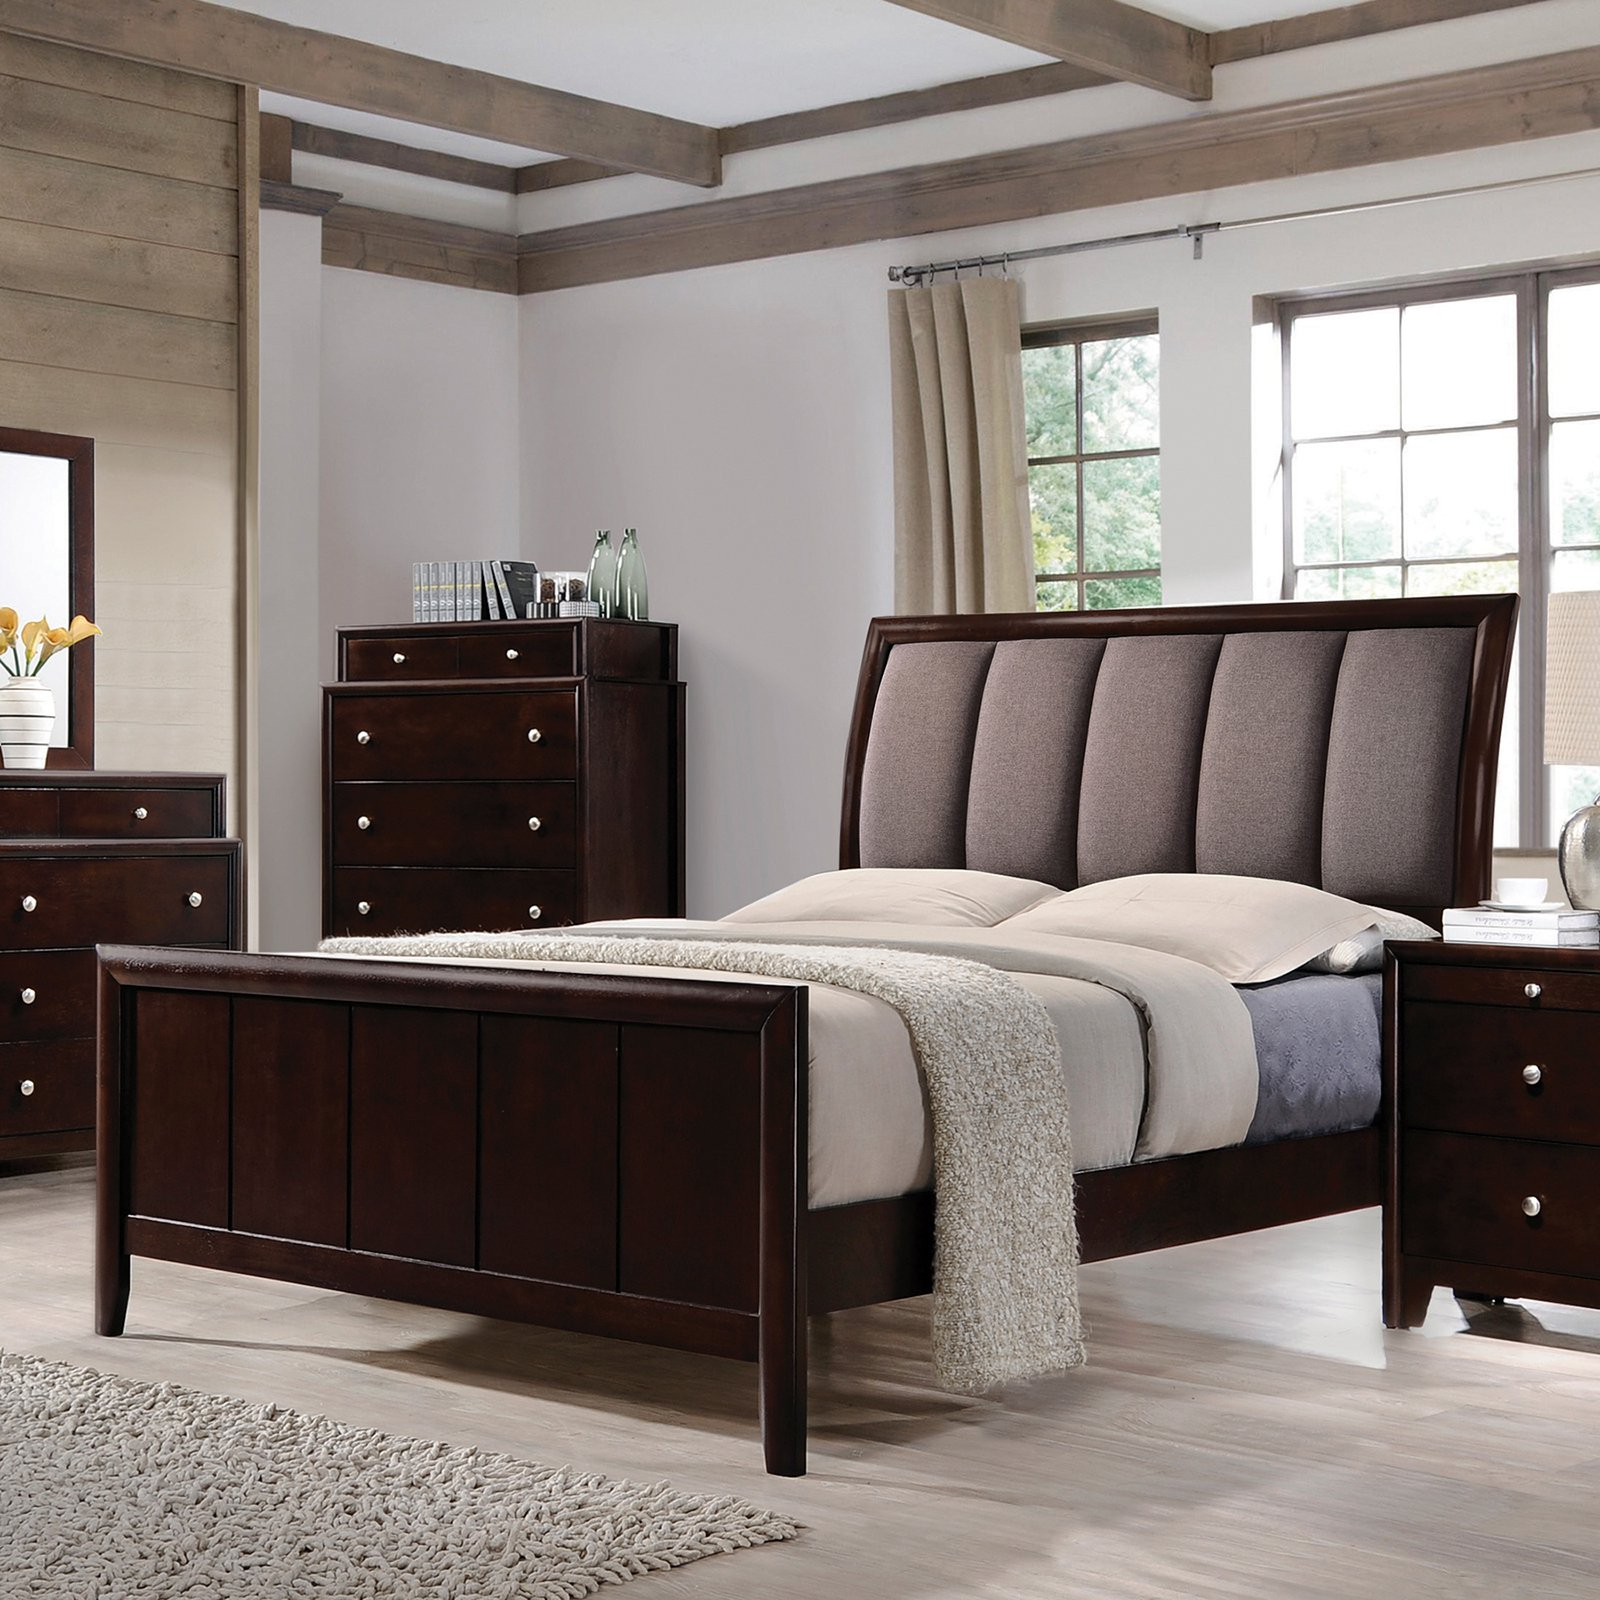 Coaster Furniture Madison Upholstered Sleigh Bed